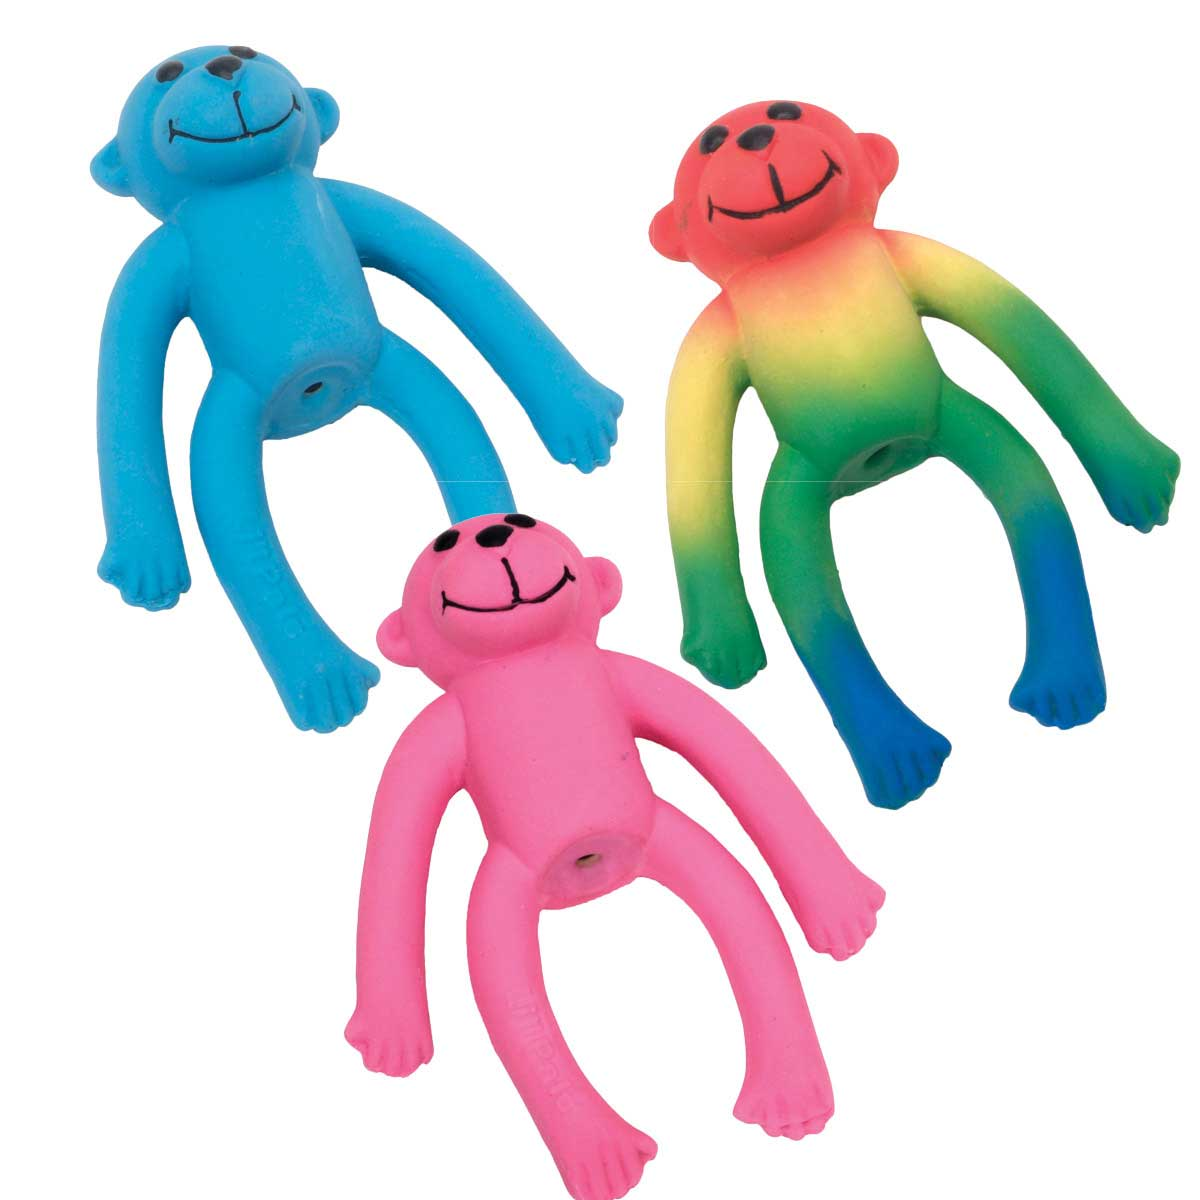 "Li'l Pals Latex Squeaker 4"" Monkey Dog Toy - Three Colors to Choose From"